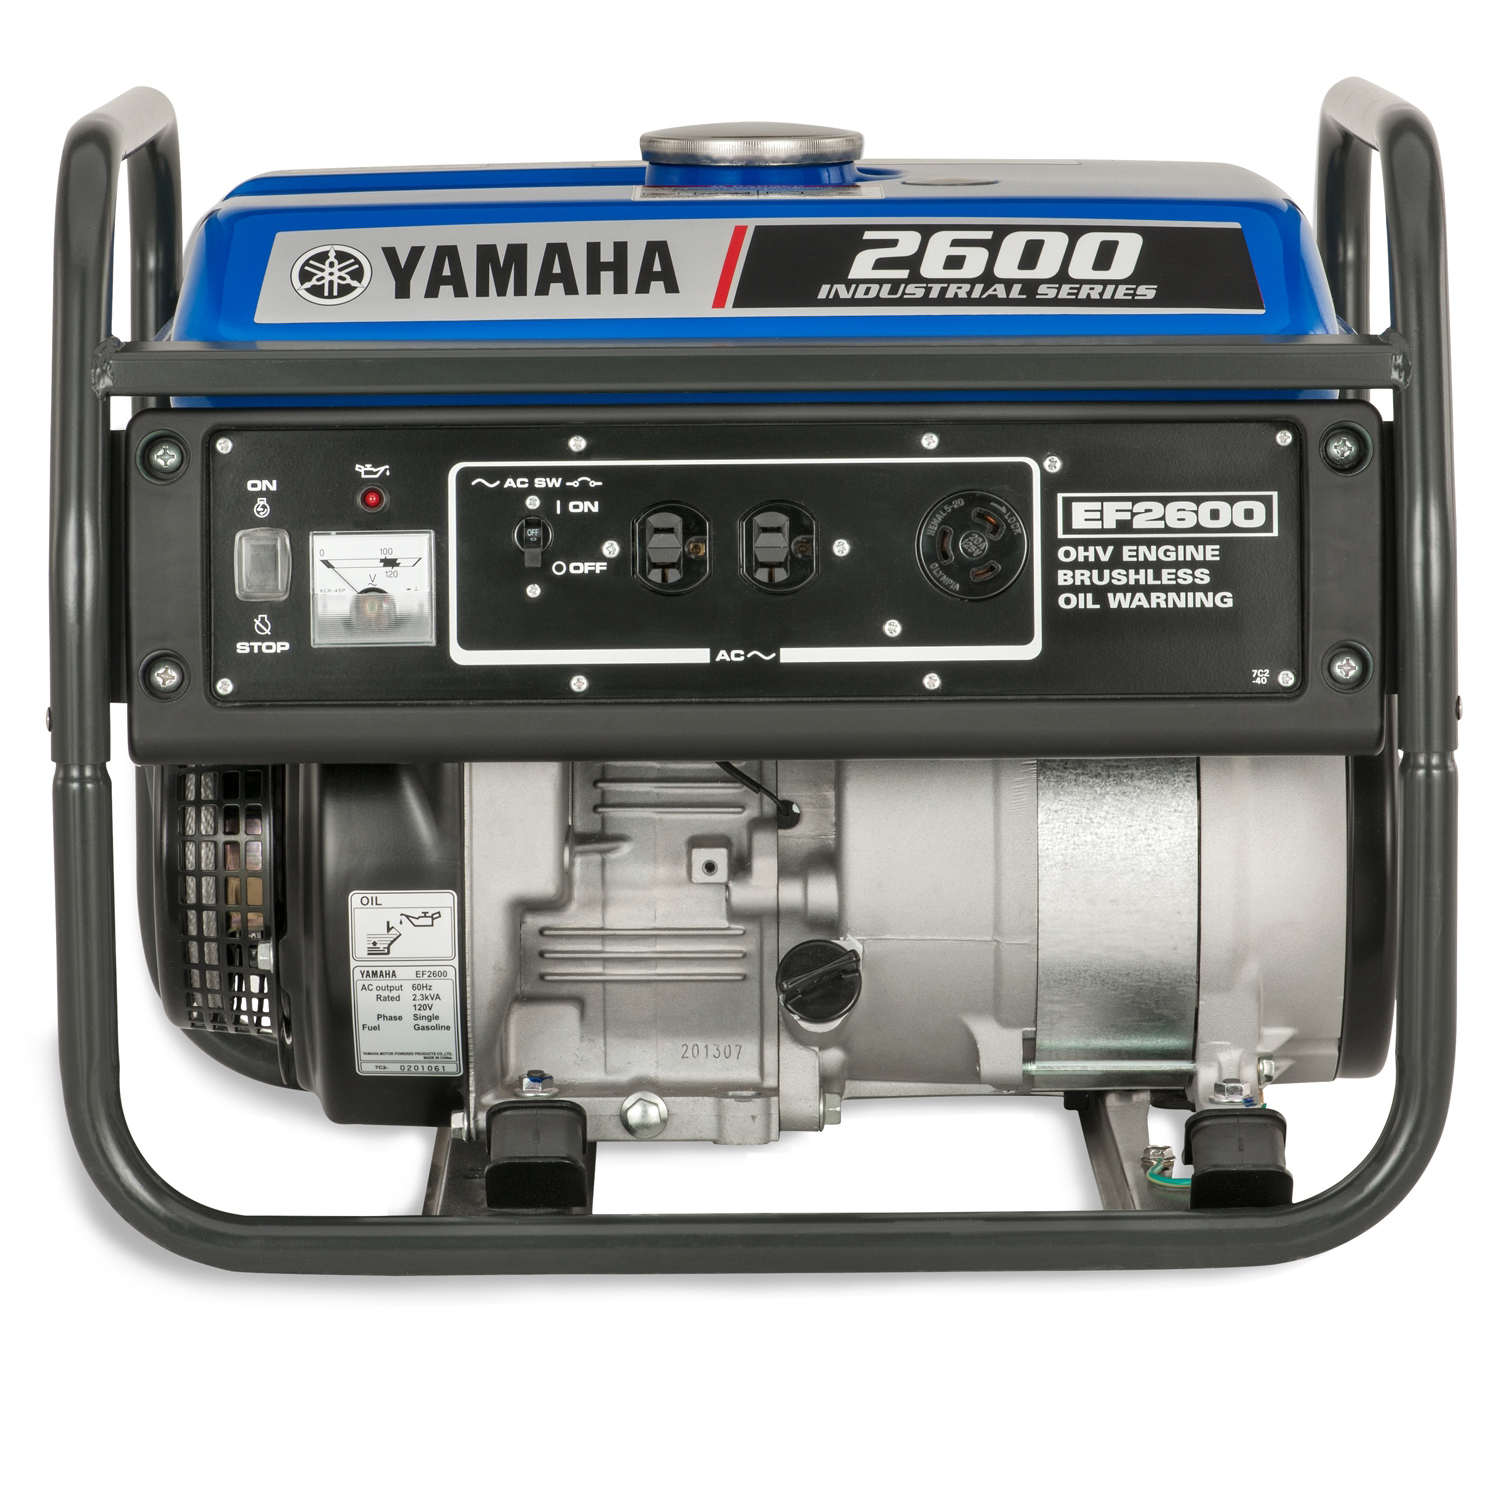 Yamaha EF2600 2 600 Watt Gas Powered Portable RV Home Backup Power